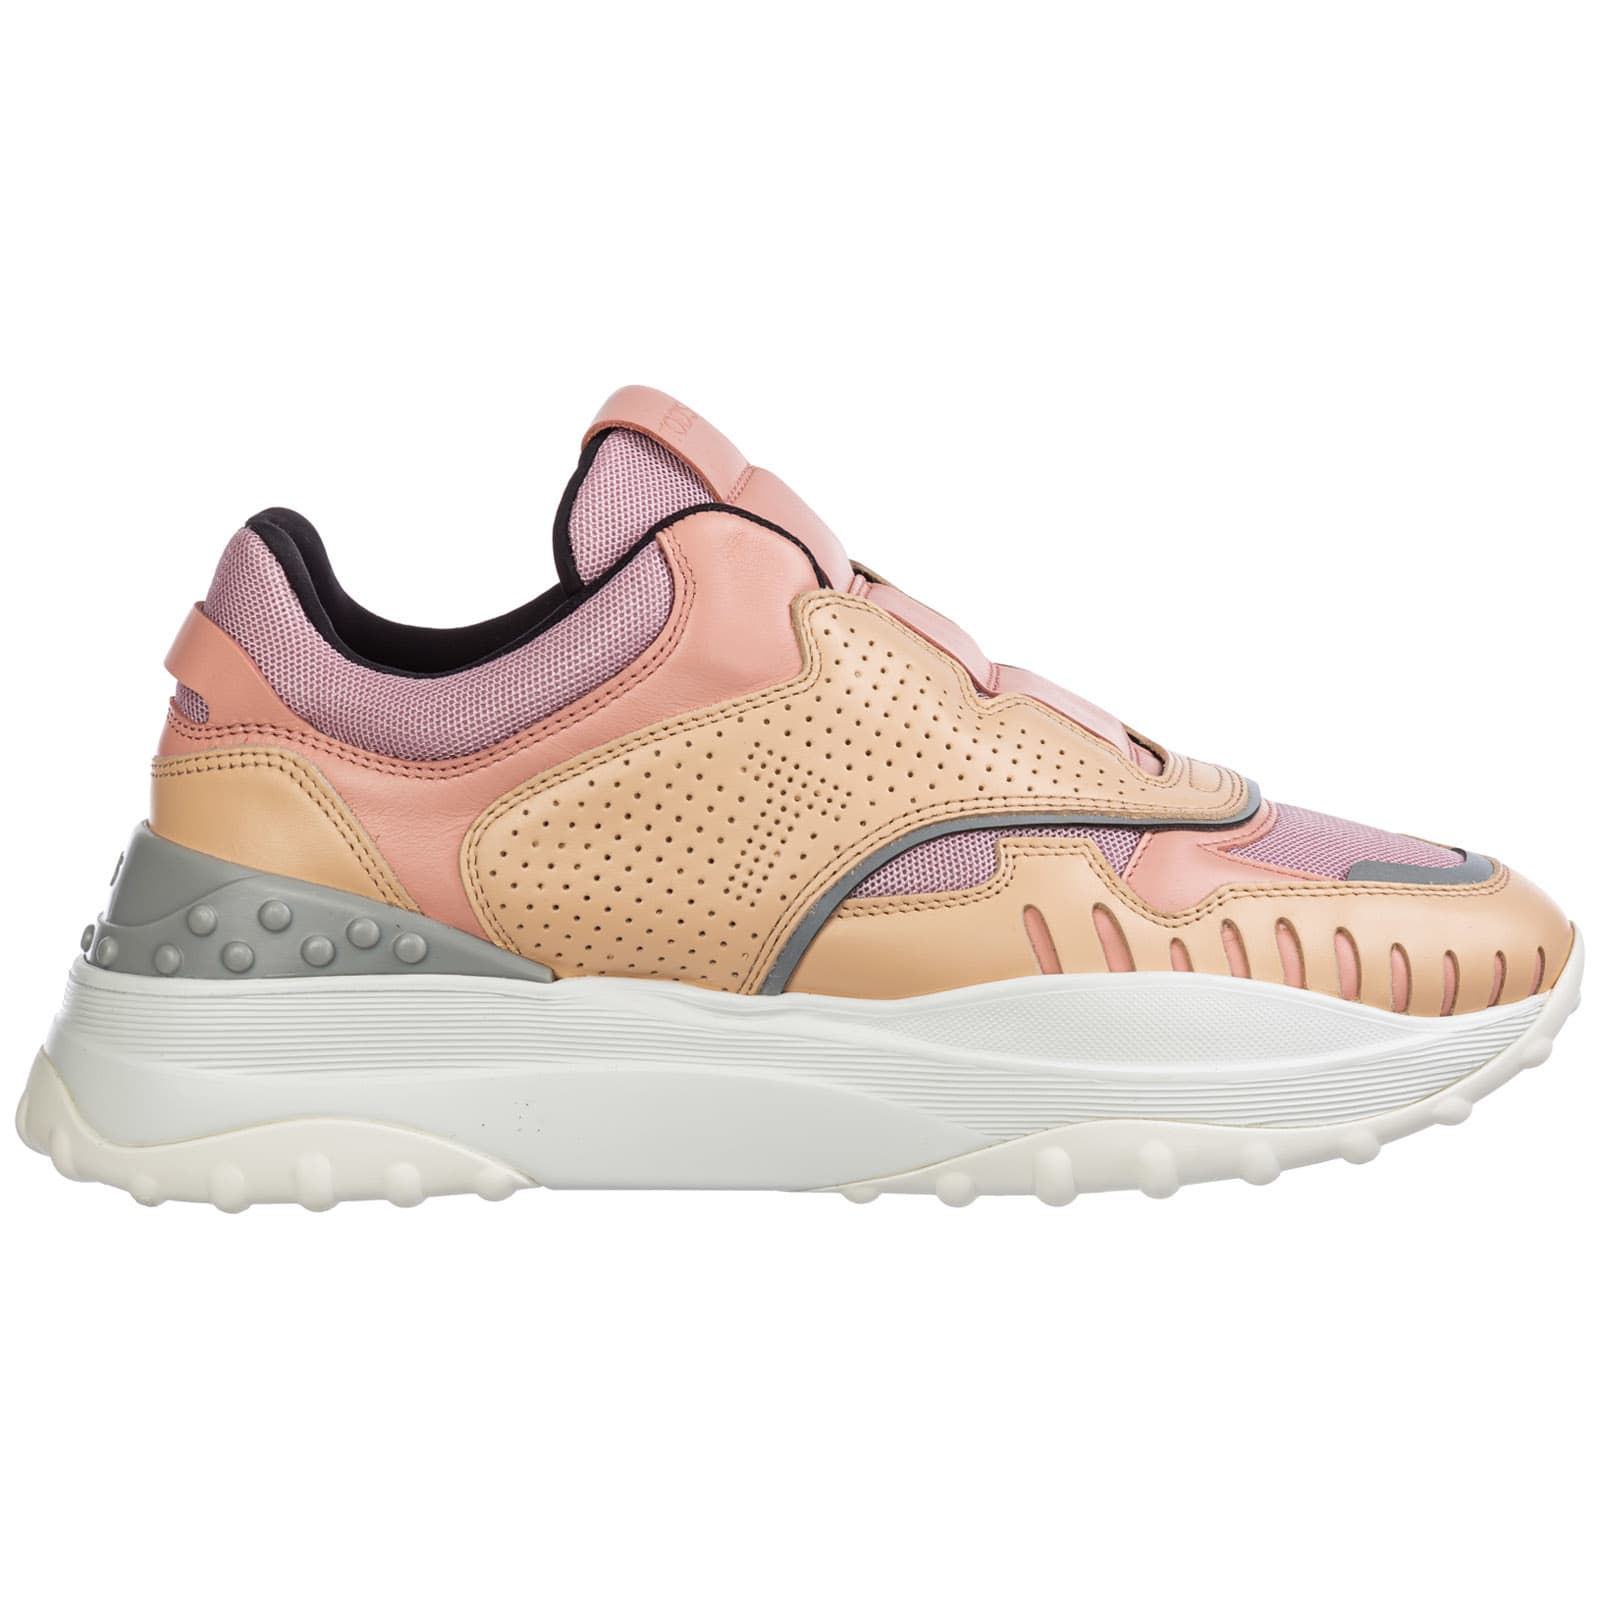 Closure: no closureHeel type: flatMade in ItalyPattern: two-tone patternSole: removable insole, rubber soleSole height: 1. 97 inchToe: round towlineType: sneakersNylon, leather